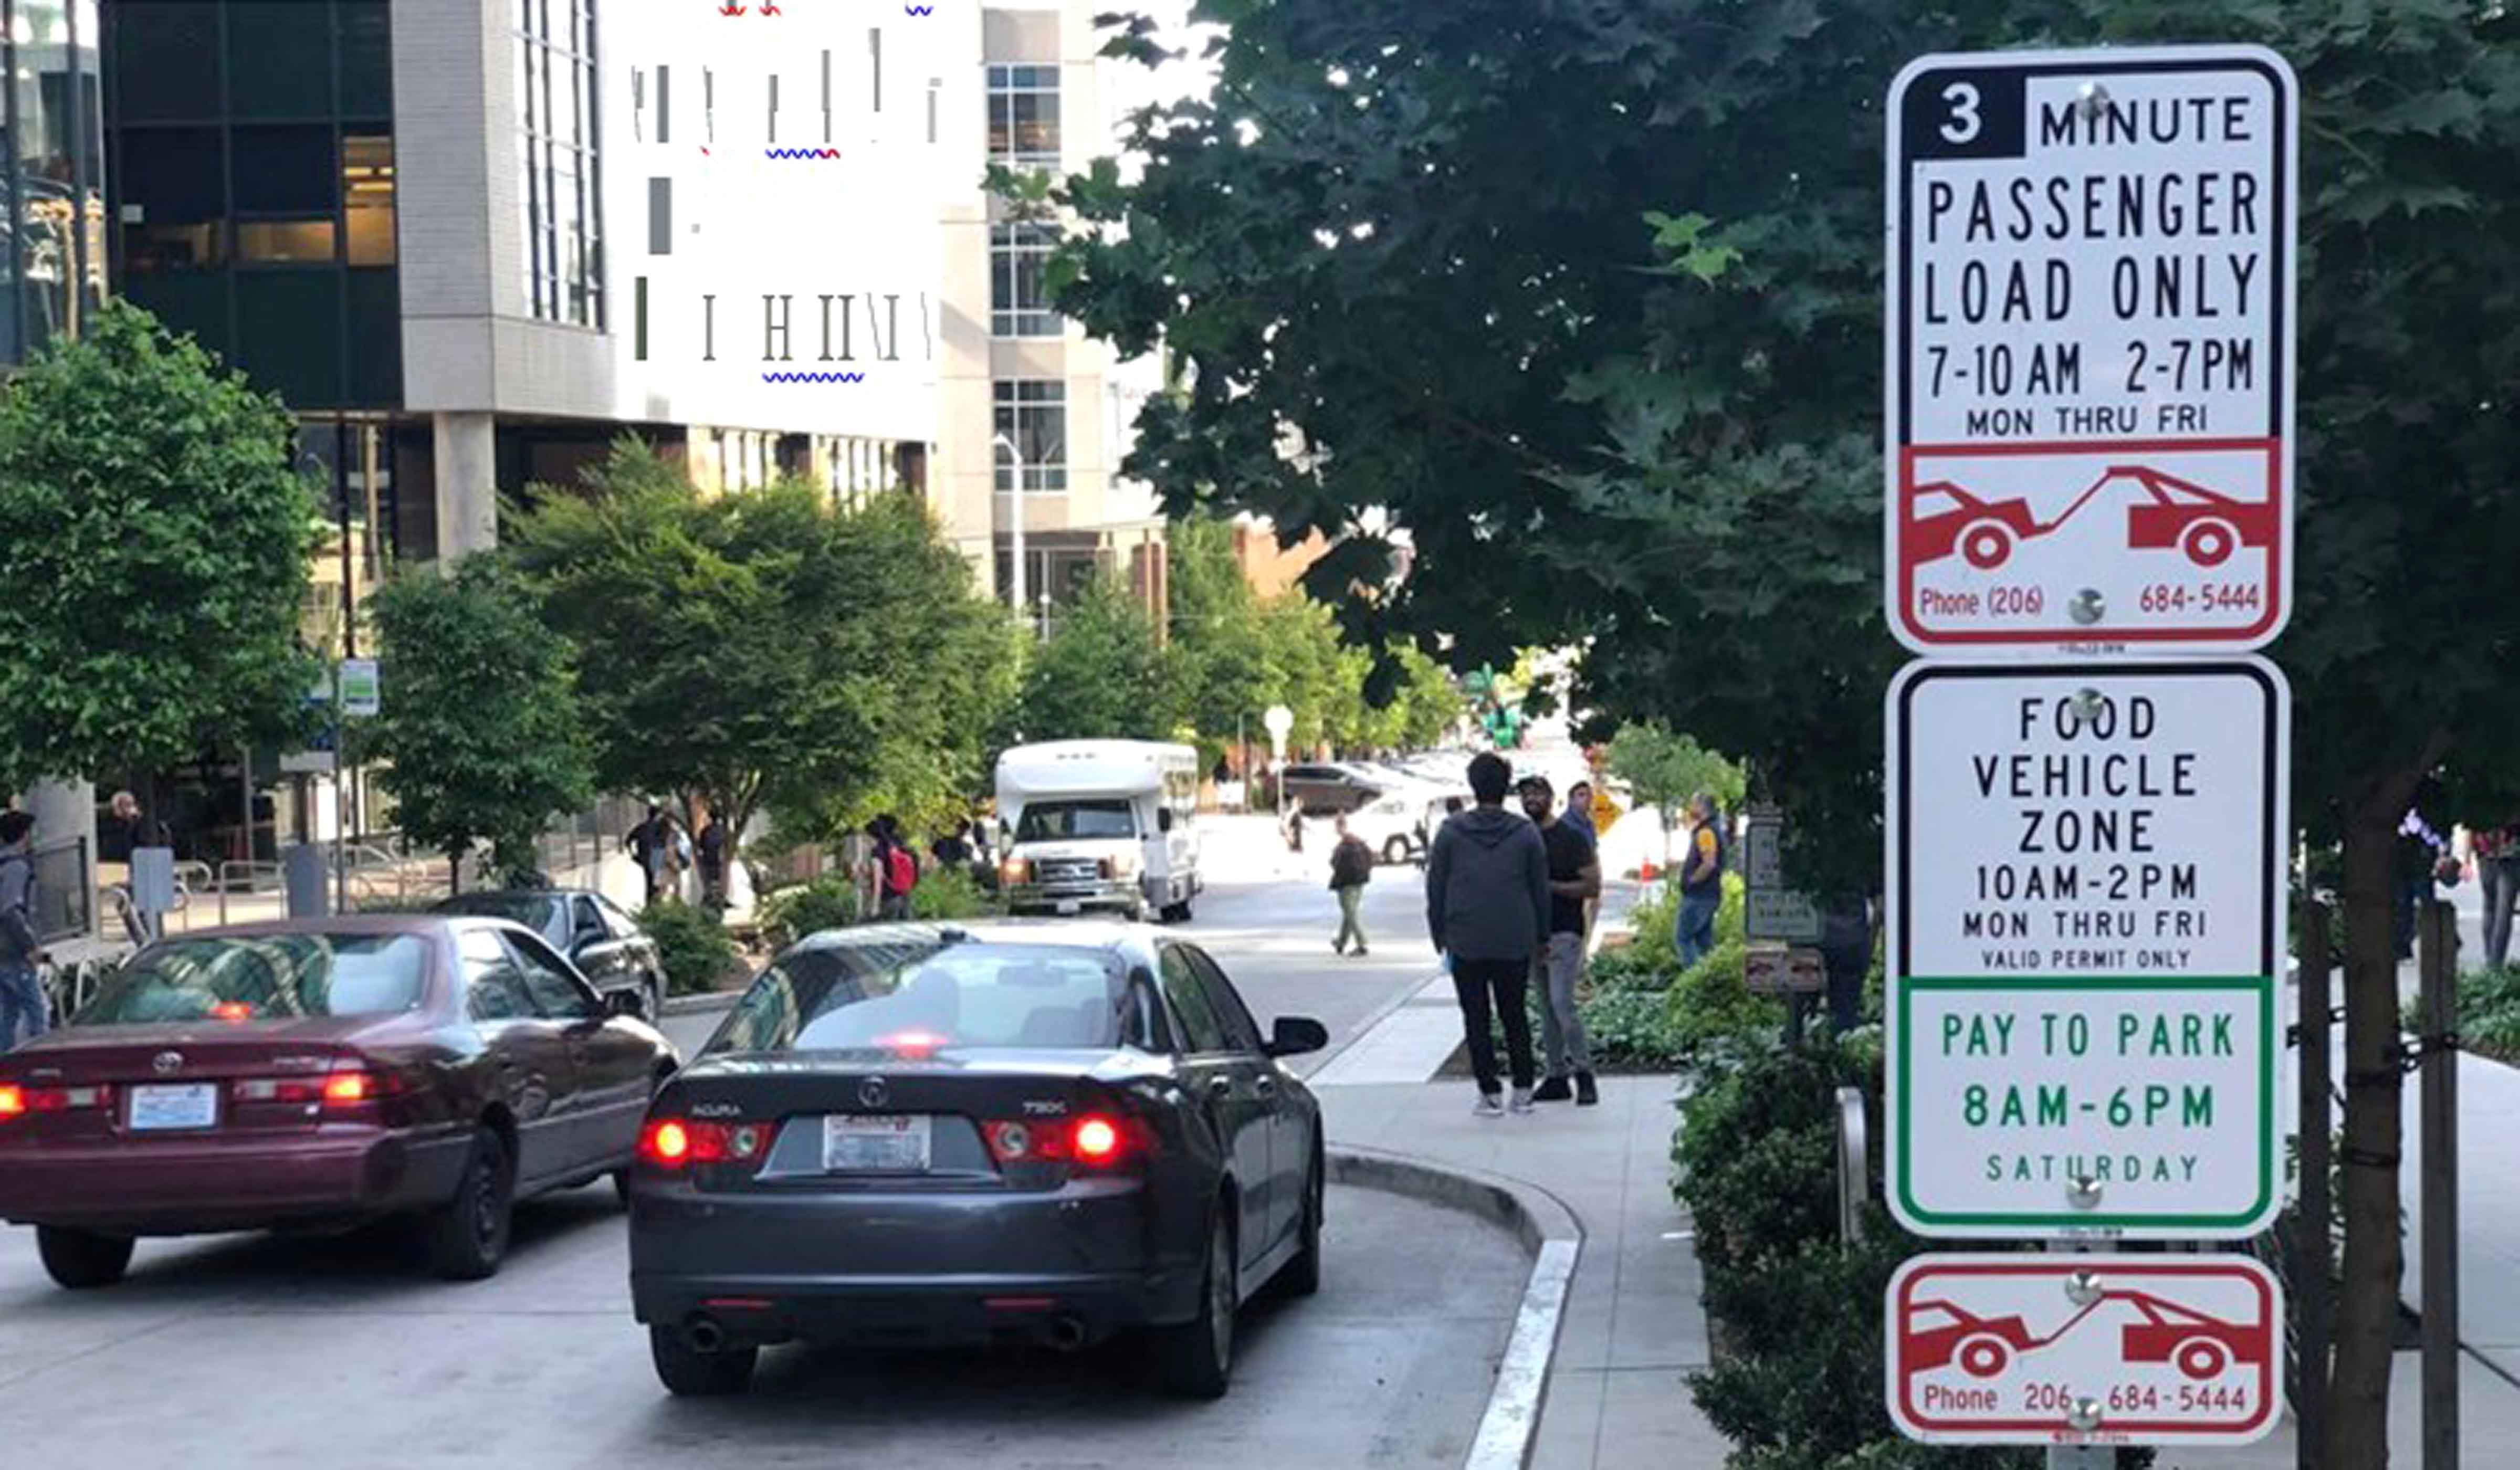 """This photograph shows a loading zone in Seattle with a sign reading, """"3-minute passenger load only 7 to 10 am and 2 to 7 pm Monday through Friday"""" and """"Food vehicle zone 10 am to 2 pm Monday through Friday, valid permit only"""""""